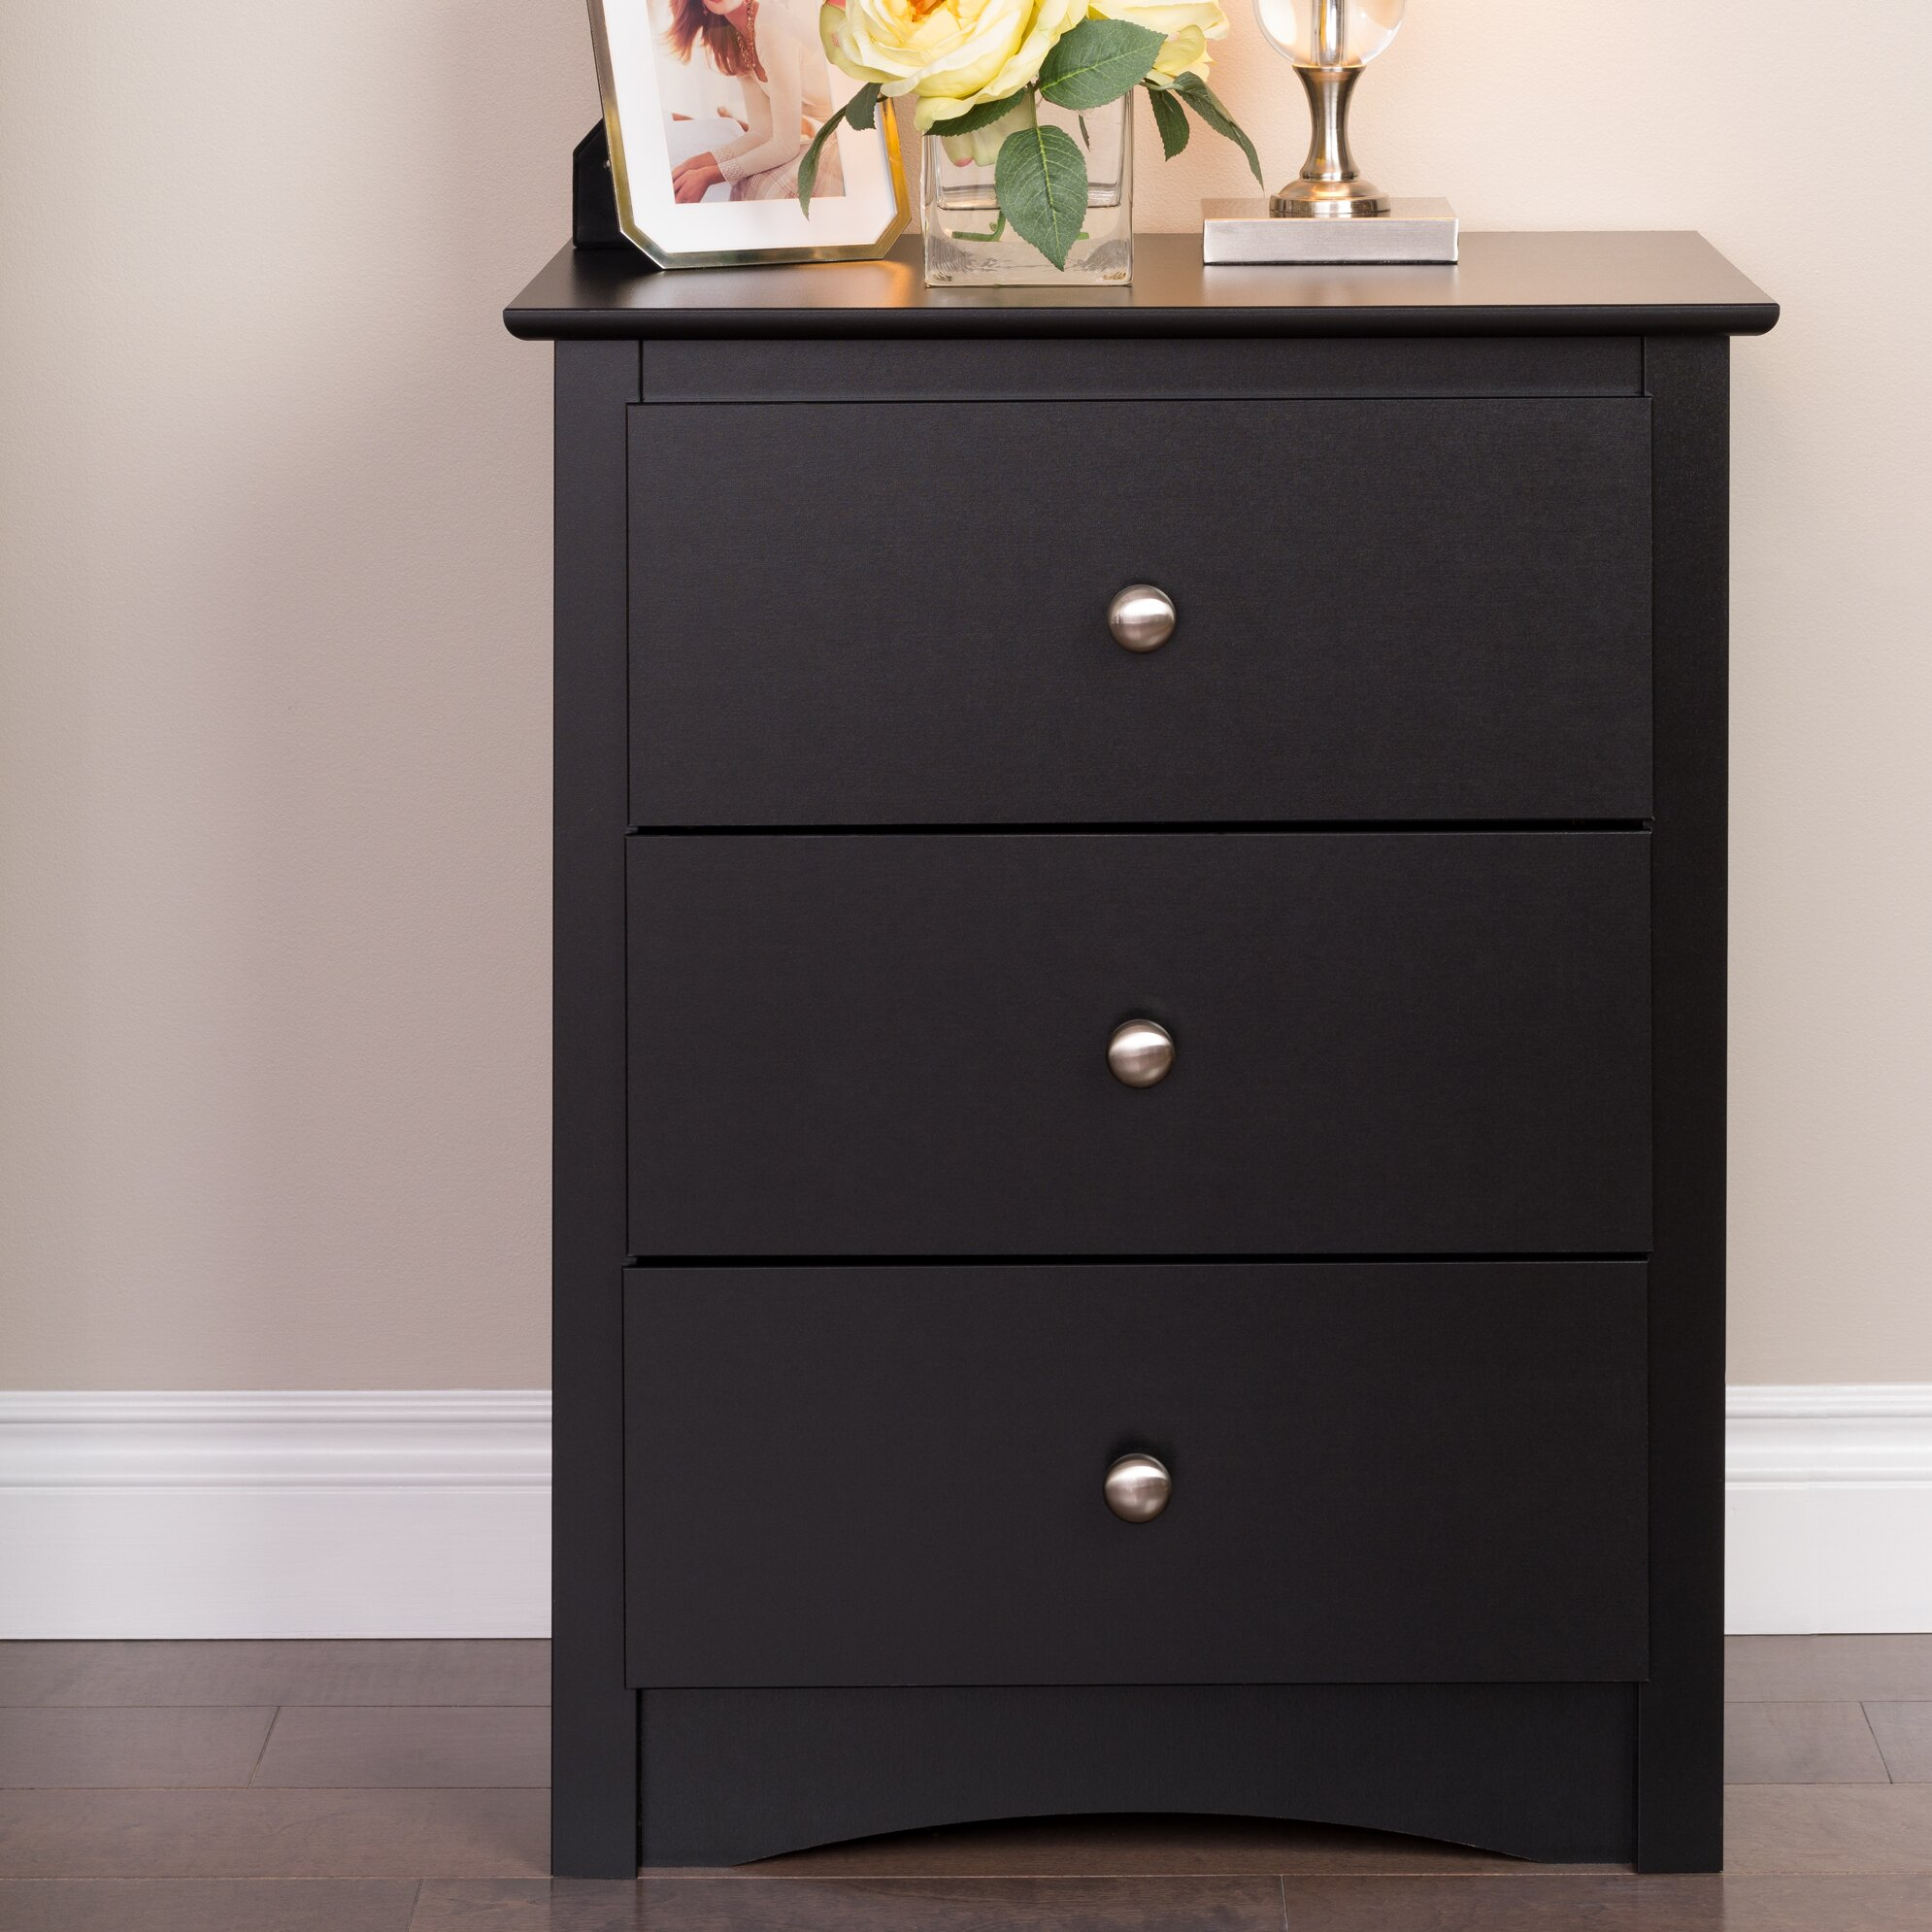 Latitude run wanda tall black 3 drawer nightstand for Extra tall nightstands